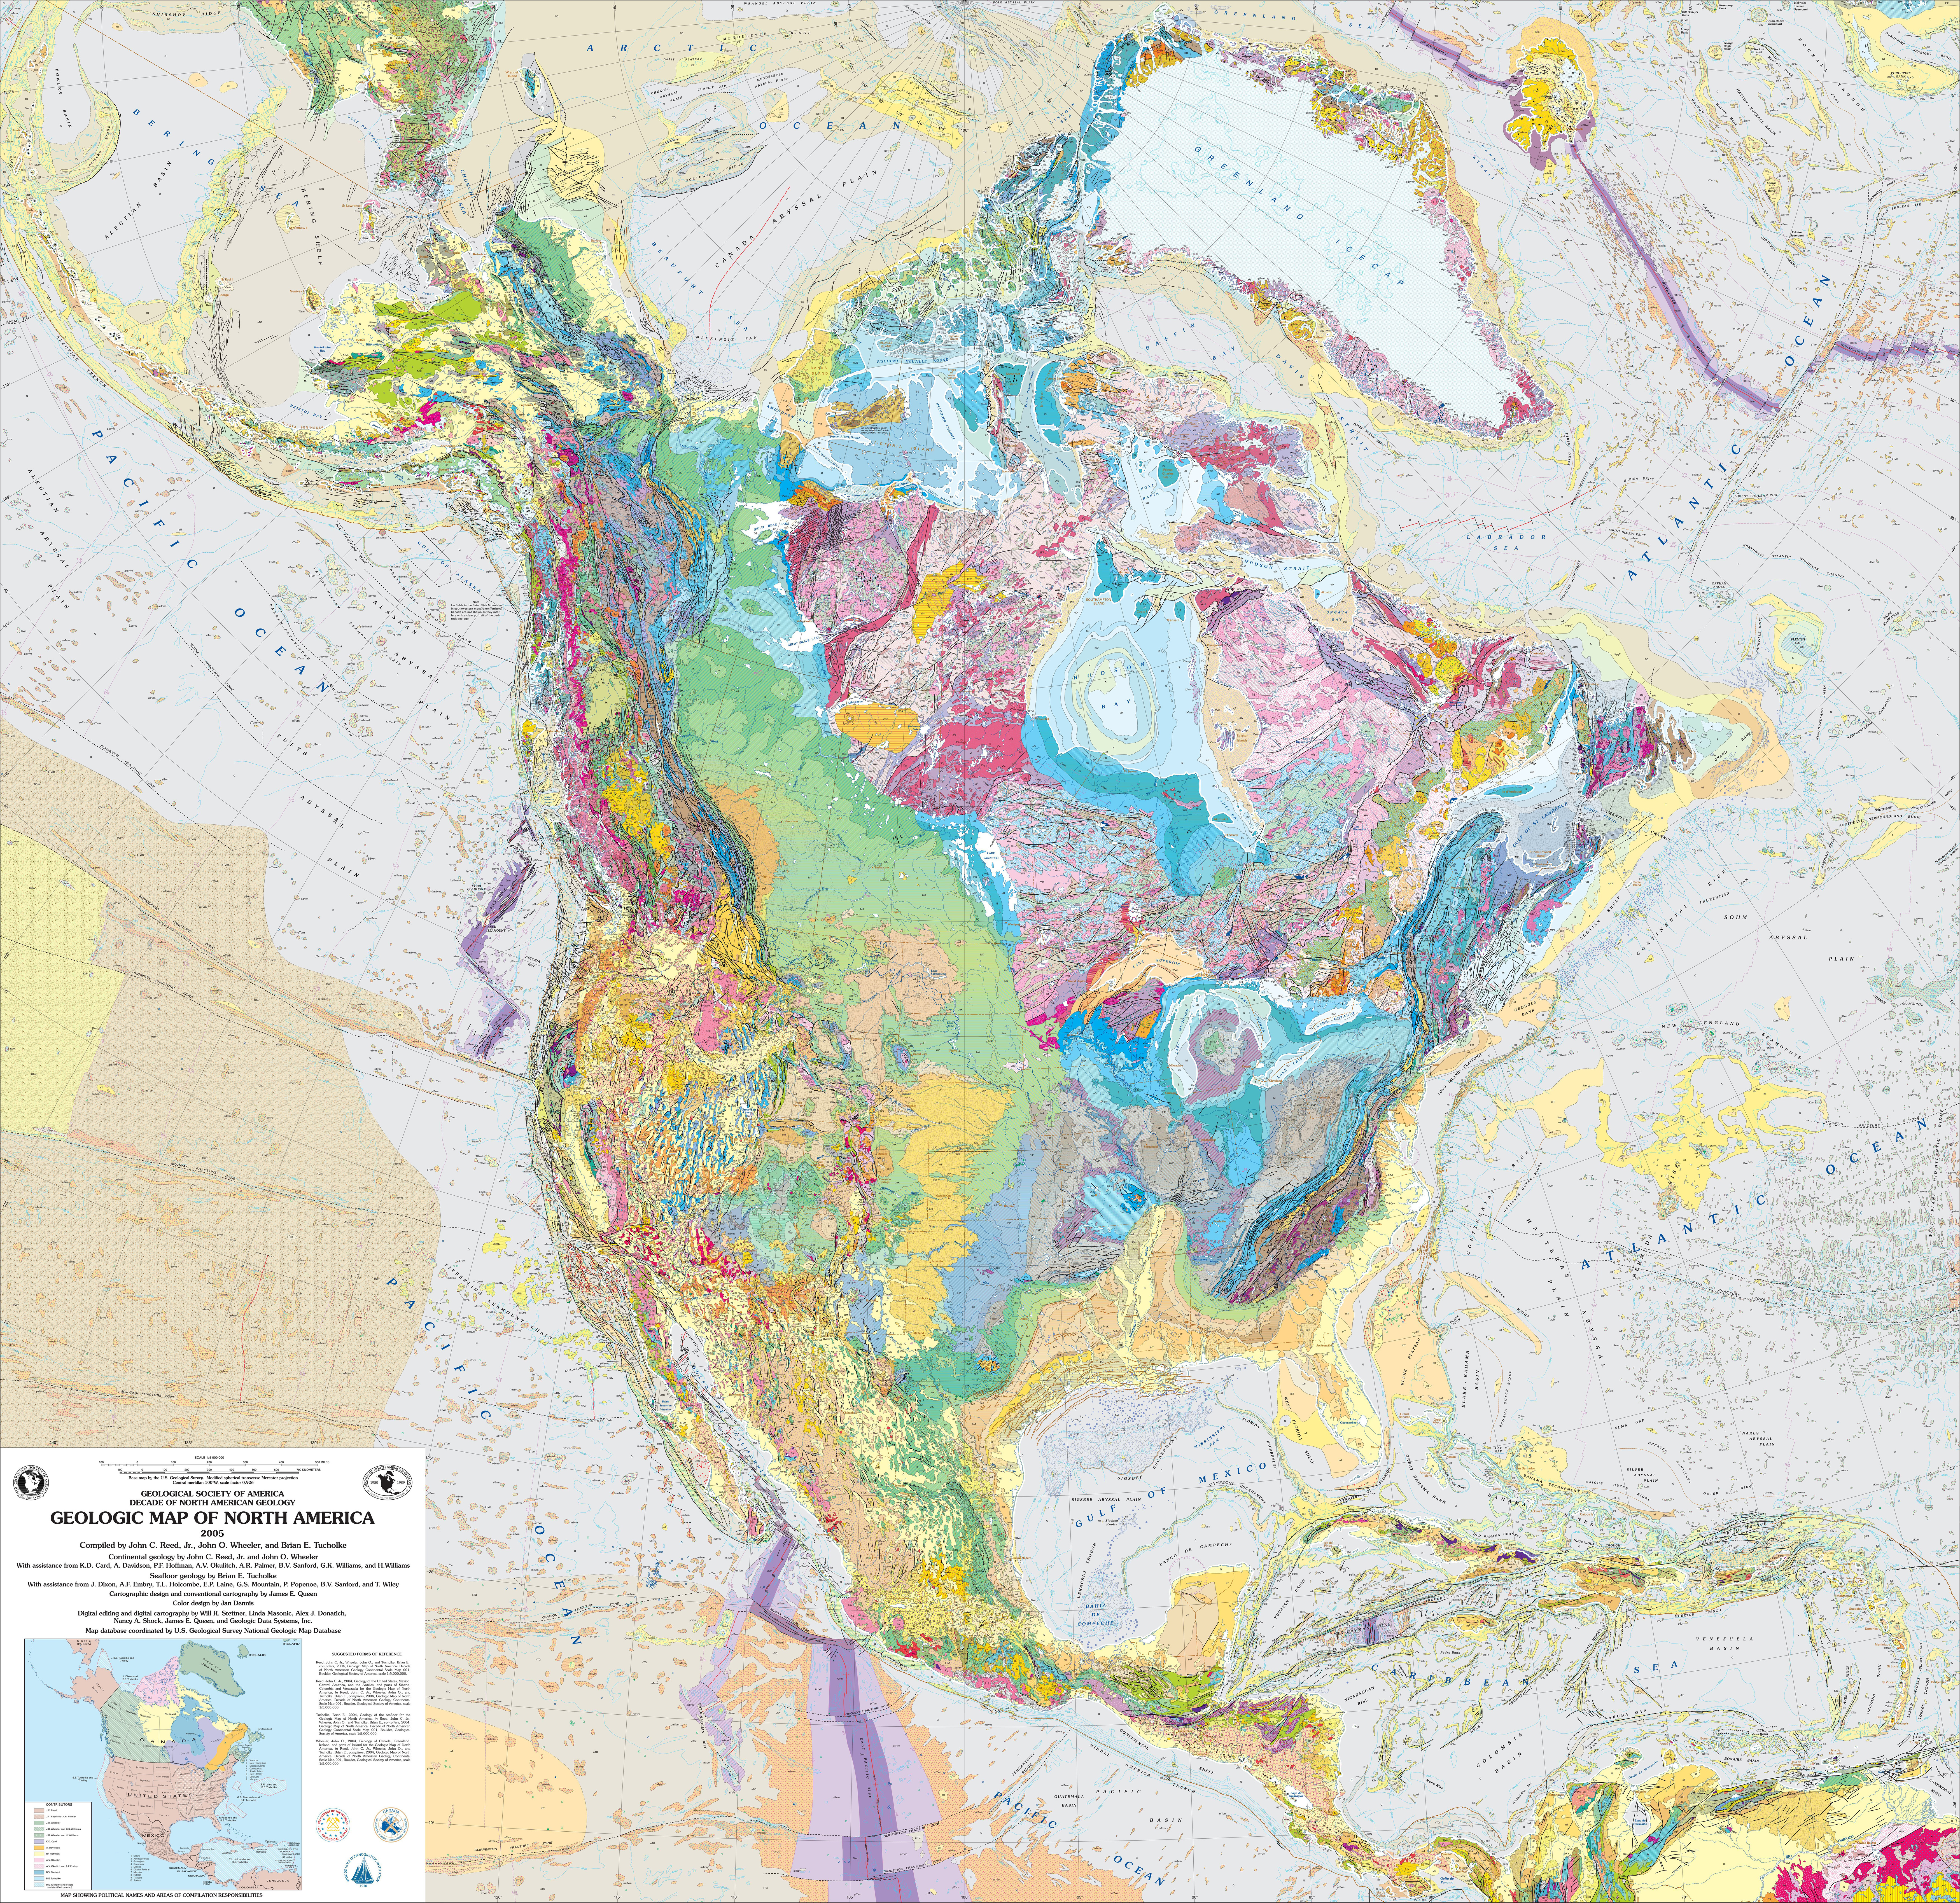 usgs geologic map of the united states Geology of North America   Wikipedia